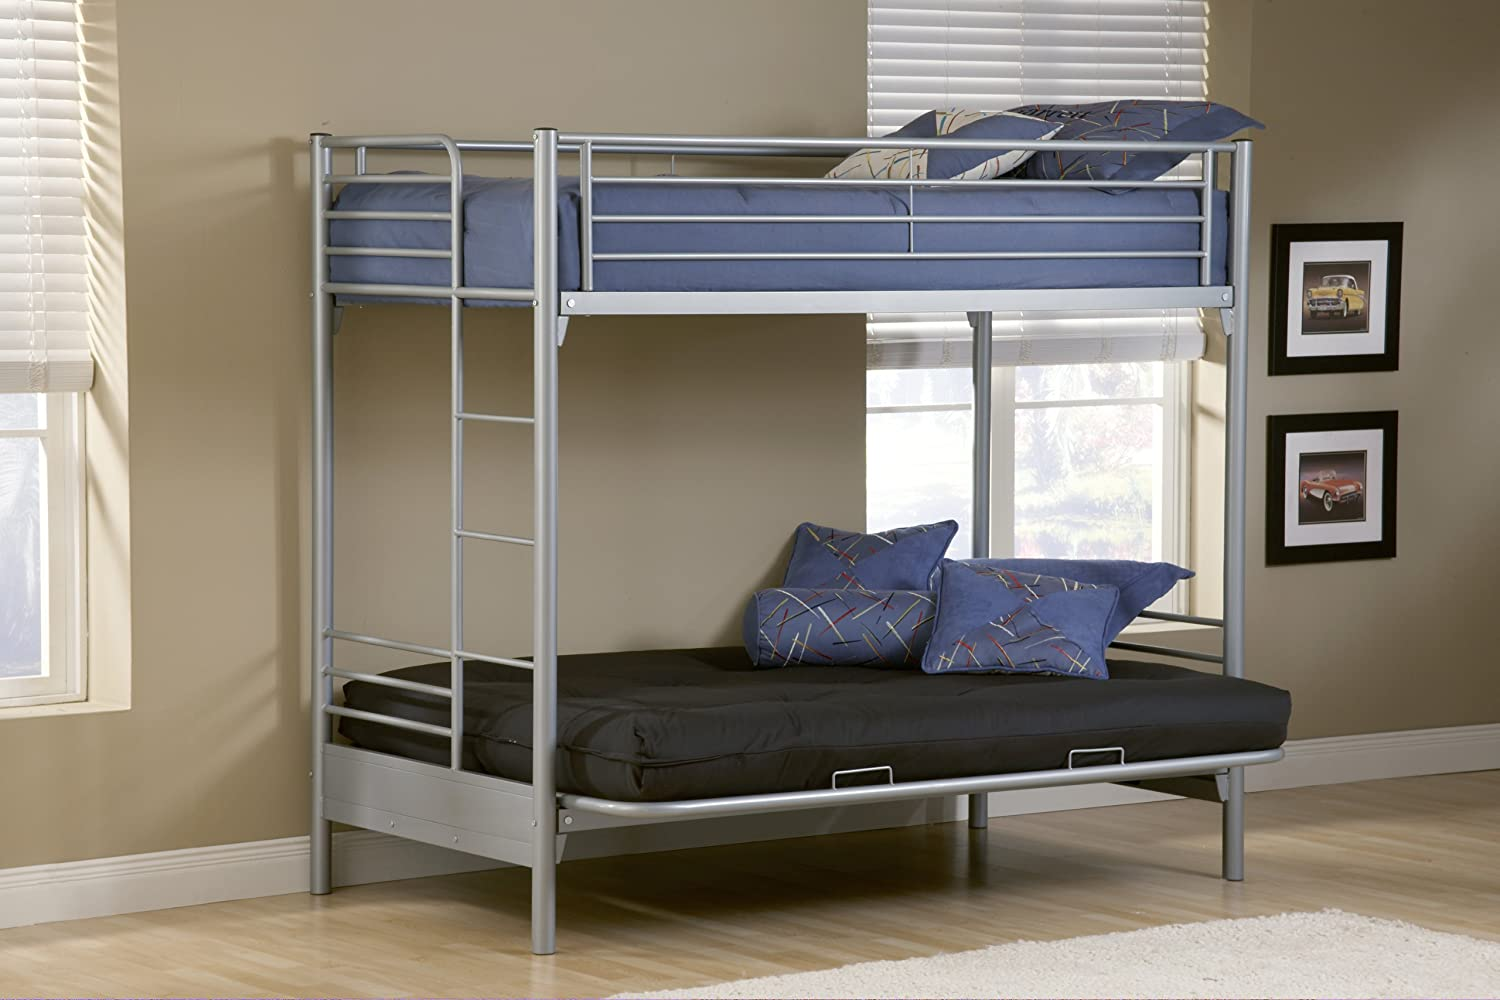 amazon    hillsdale universal youth twin over futon bunk bed in silver finish  kitchen  u0026 dining amazon    hillsdale universal youth twin over futon bunk bed in      rh   amazon